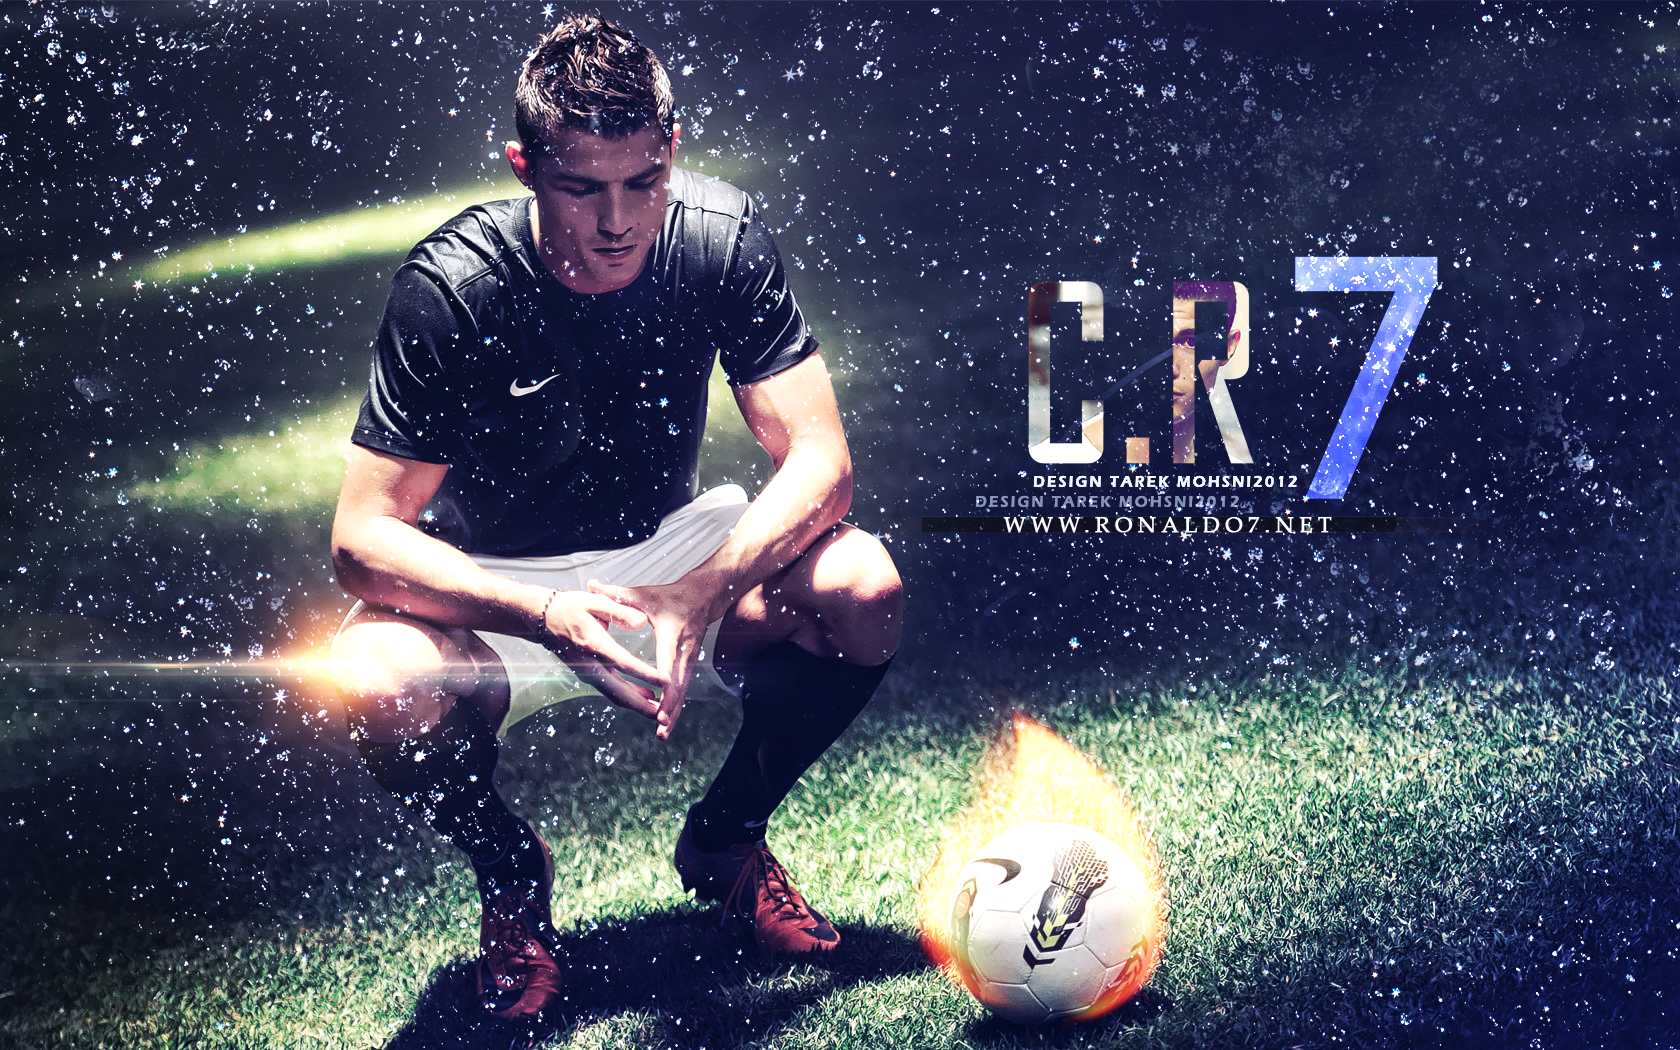 3d Wallpapers Messi Cristiano Ronaldo Or Cr7 Picture Image Wallpaper Full Hd